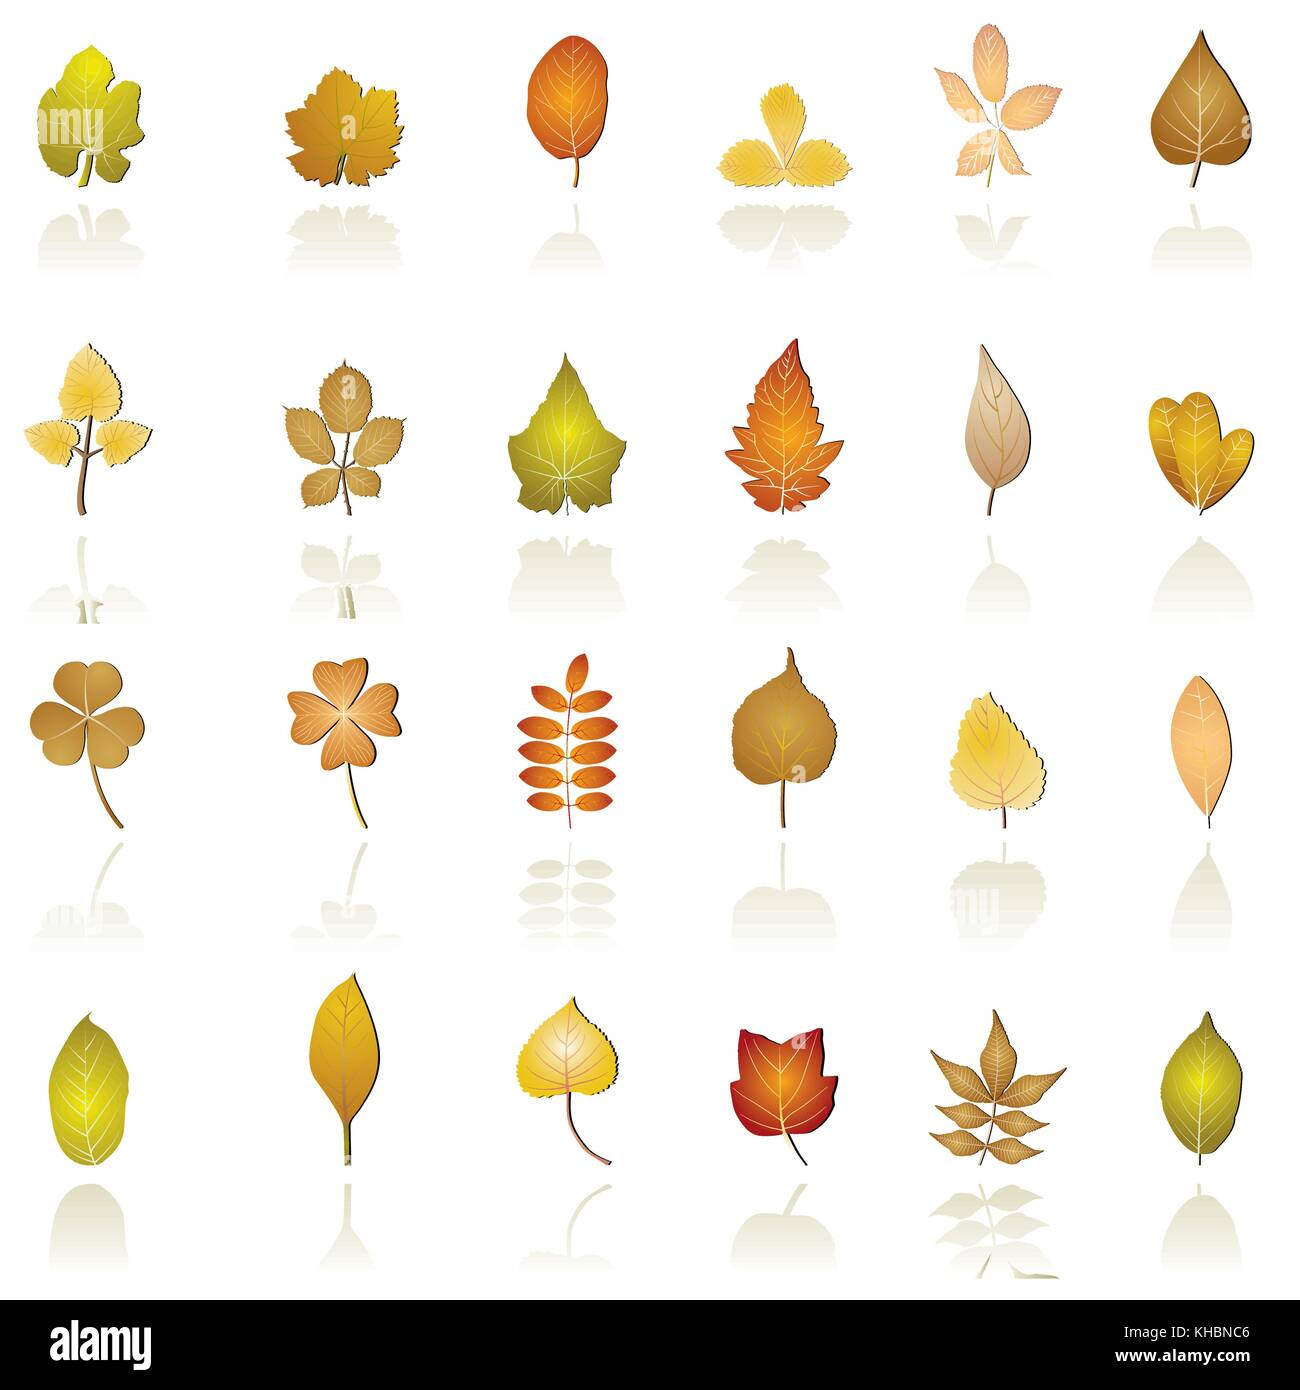 autumn leaf background and icons - vector icon set - Stock Vector